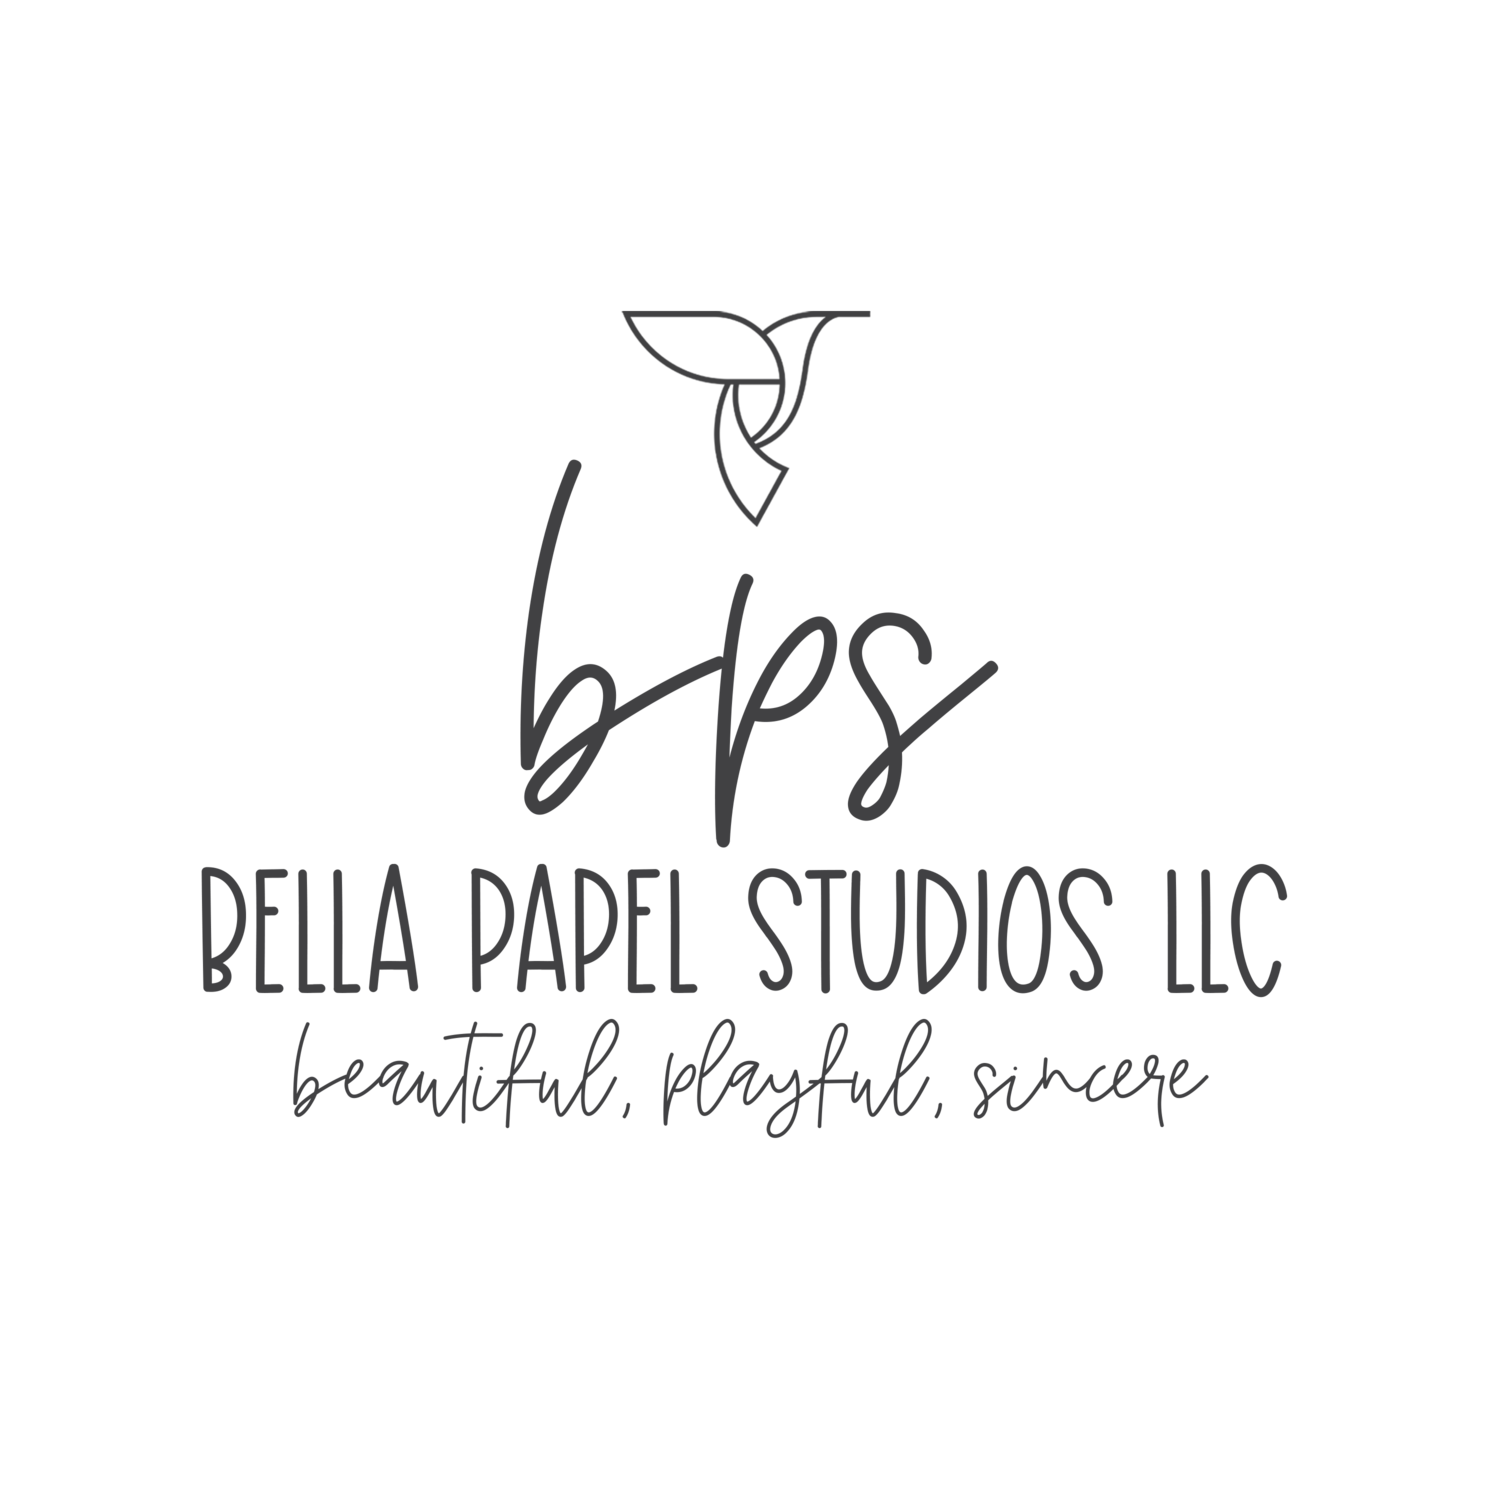 Bella Papel Studios LLC